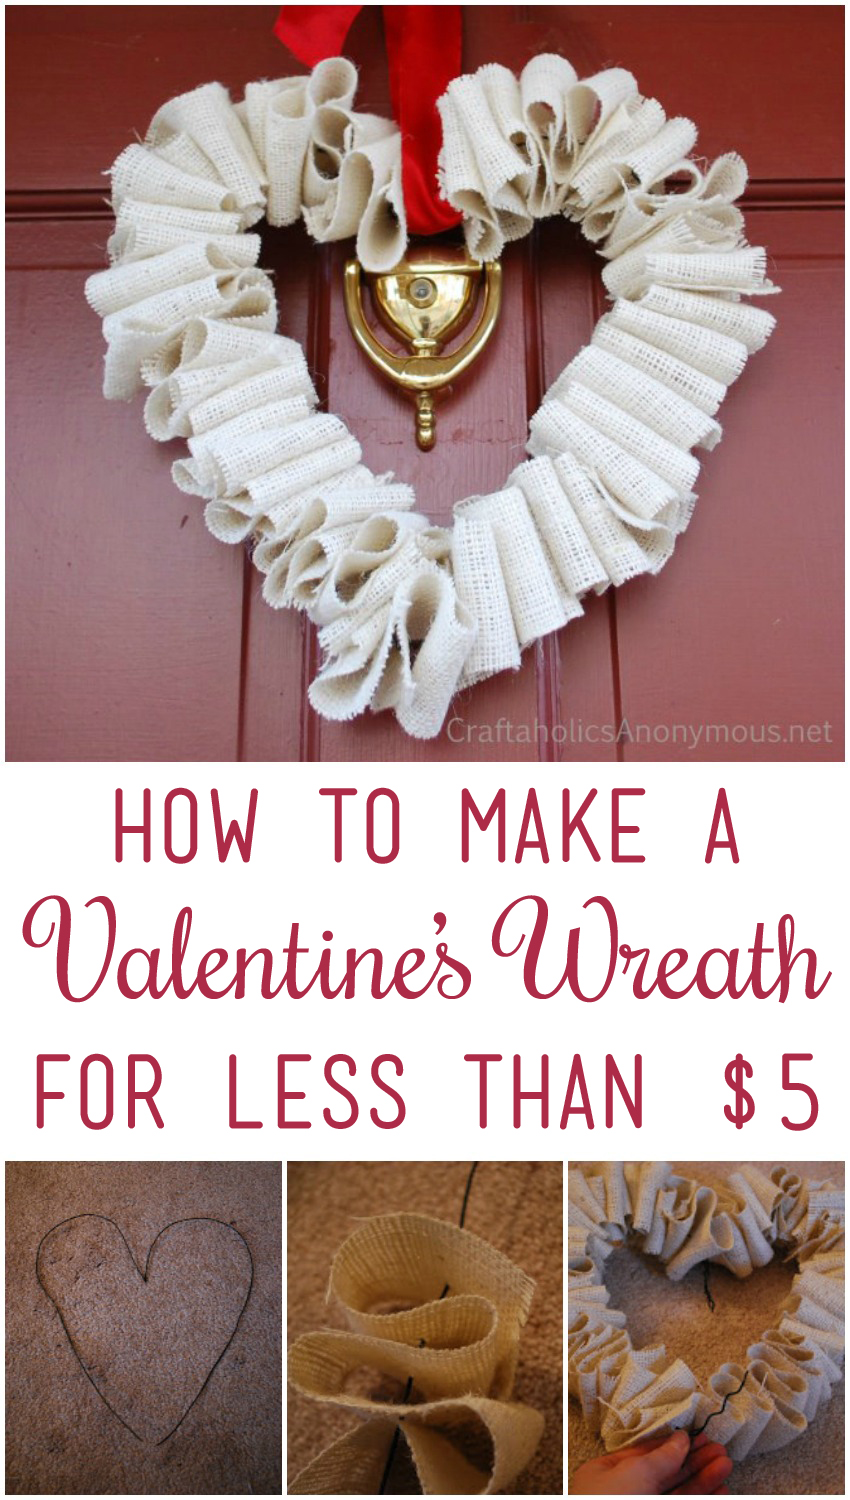 How to Make a Valentine's Wreath for Less than $5 | Craftaholics Anonymous®